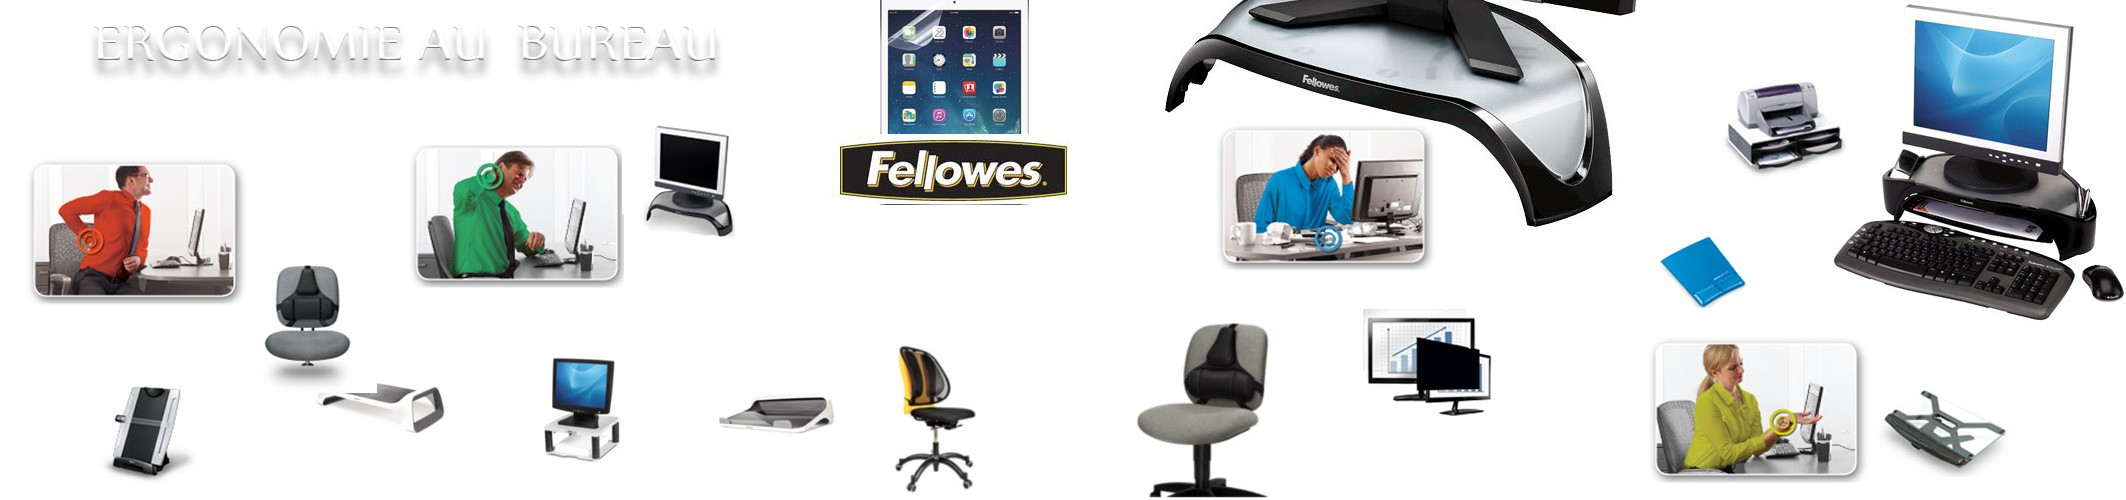 Fourniture de bureau ergonomique Fellowes